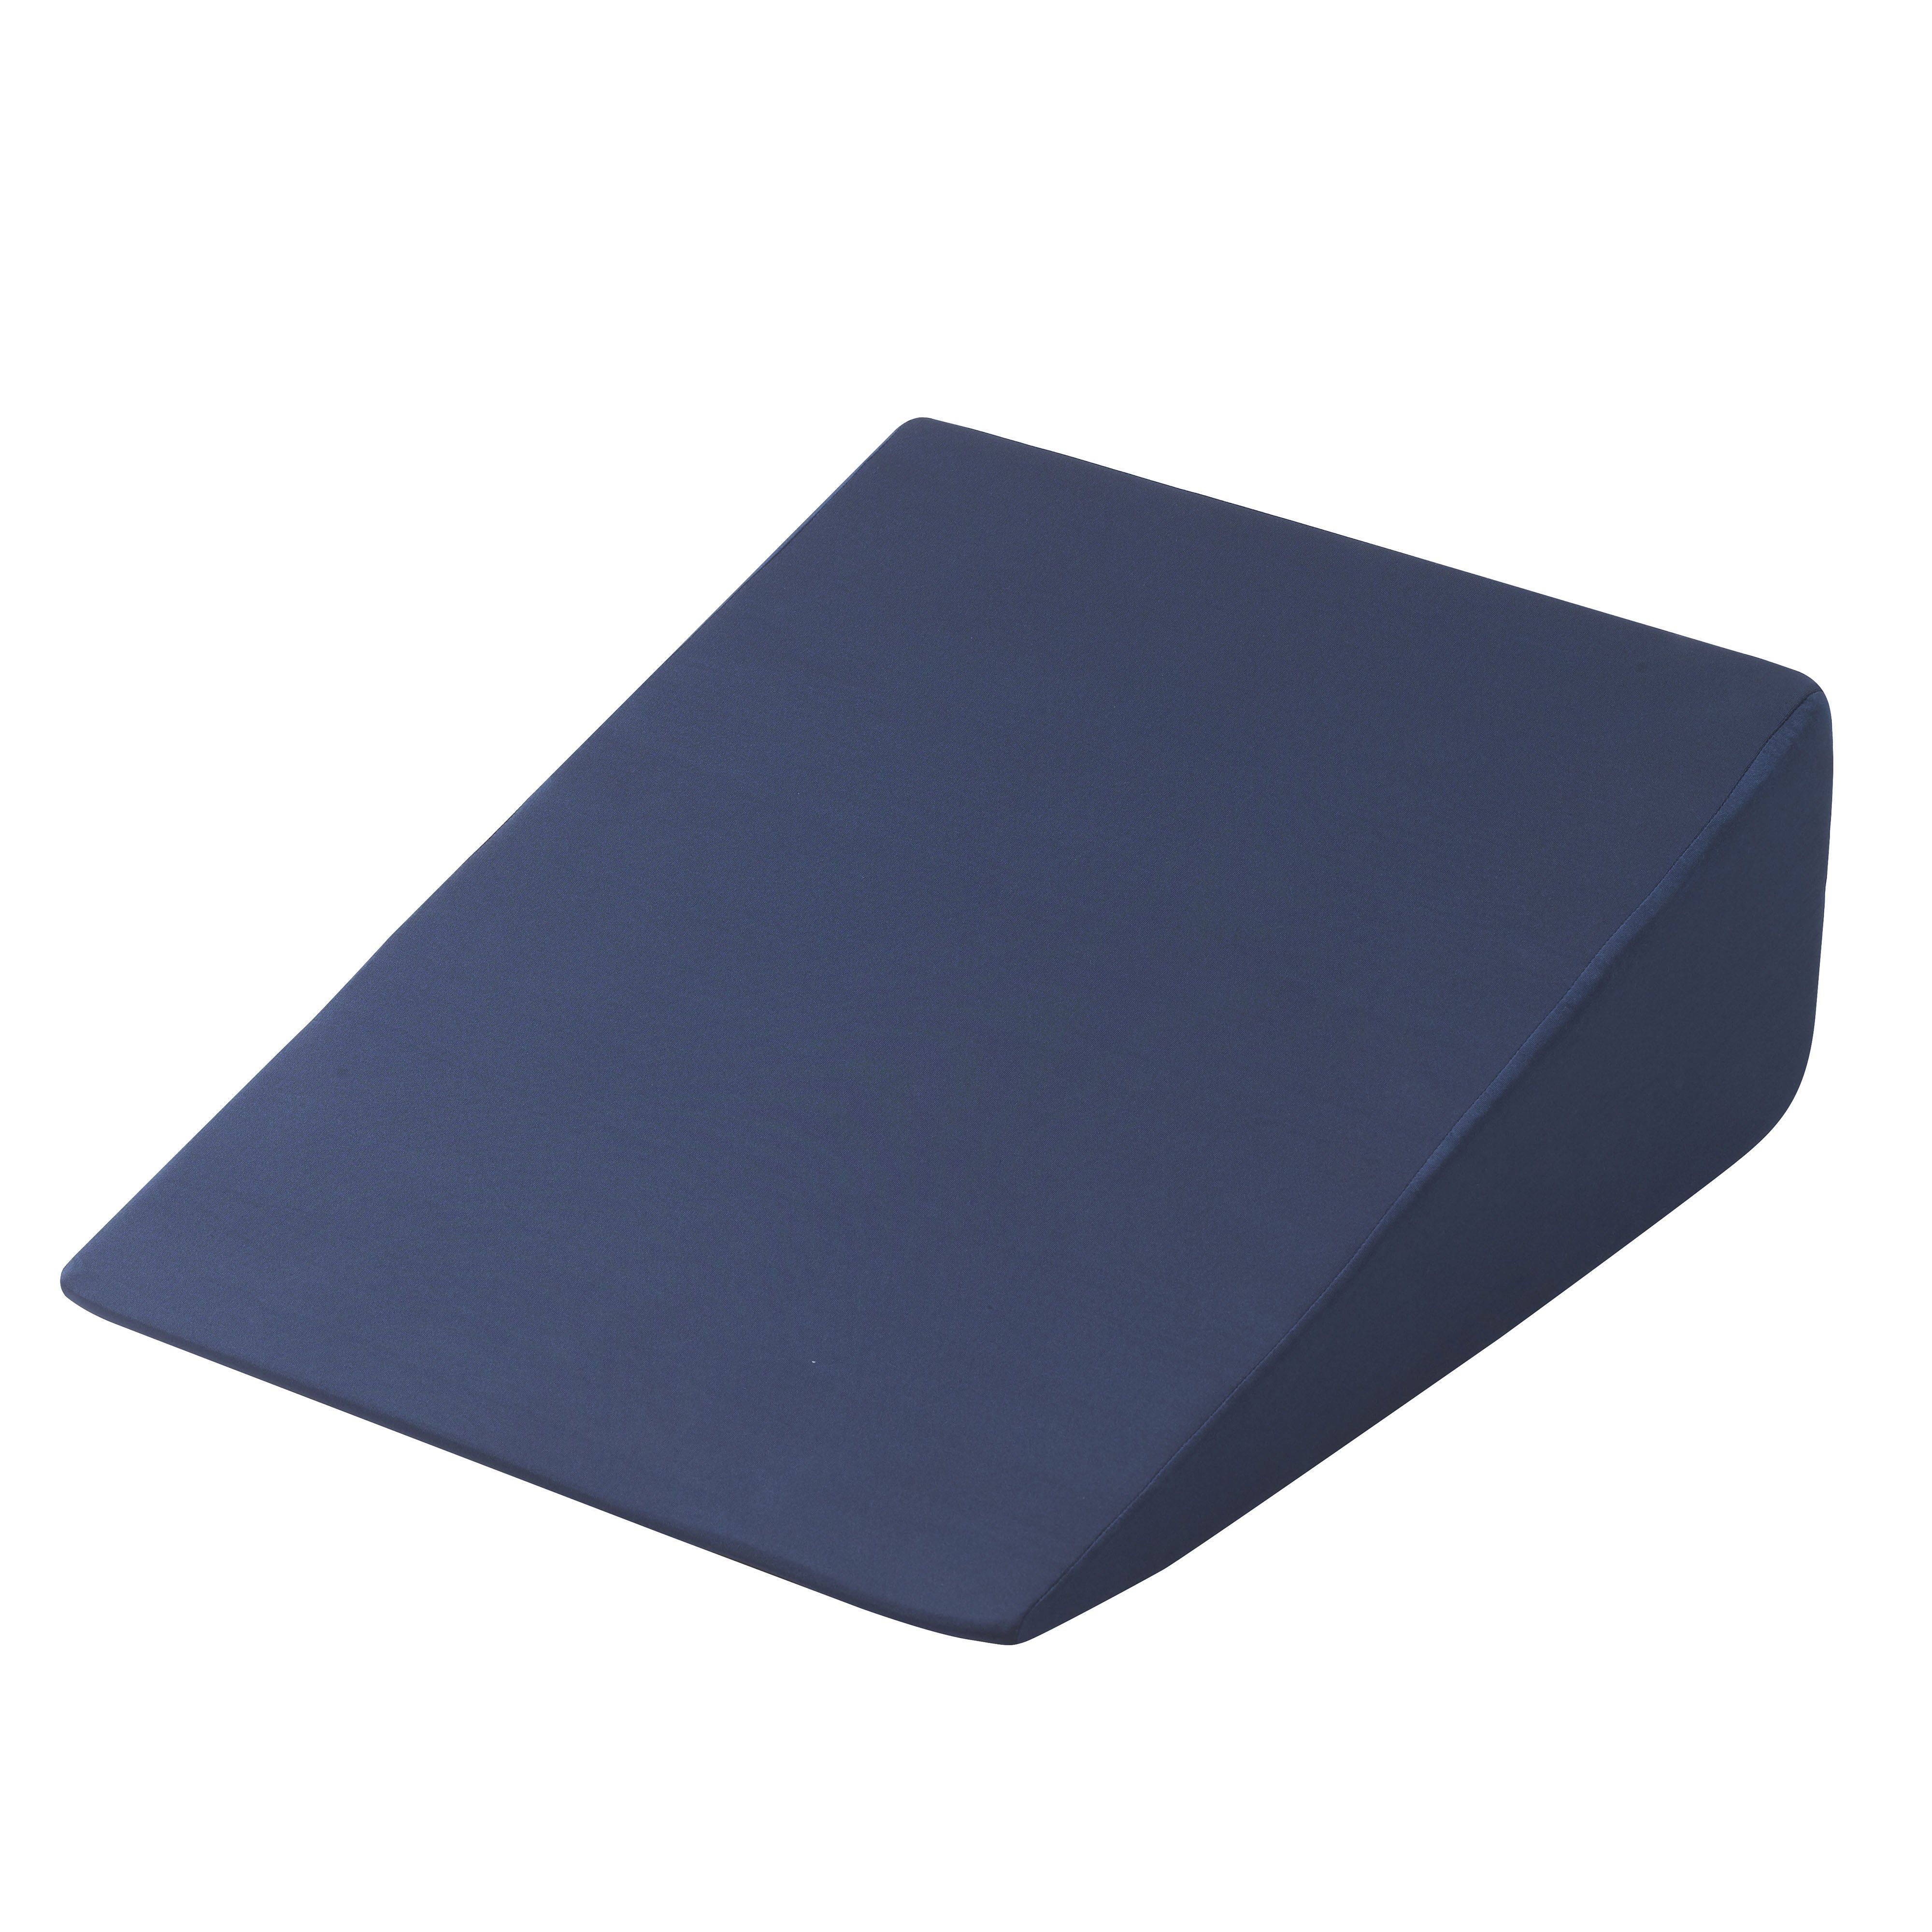 Compressed Bed Wedge Cushion Wedge cushion, Bed wedge